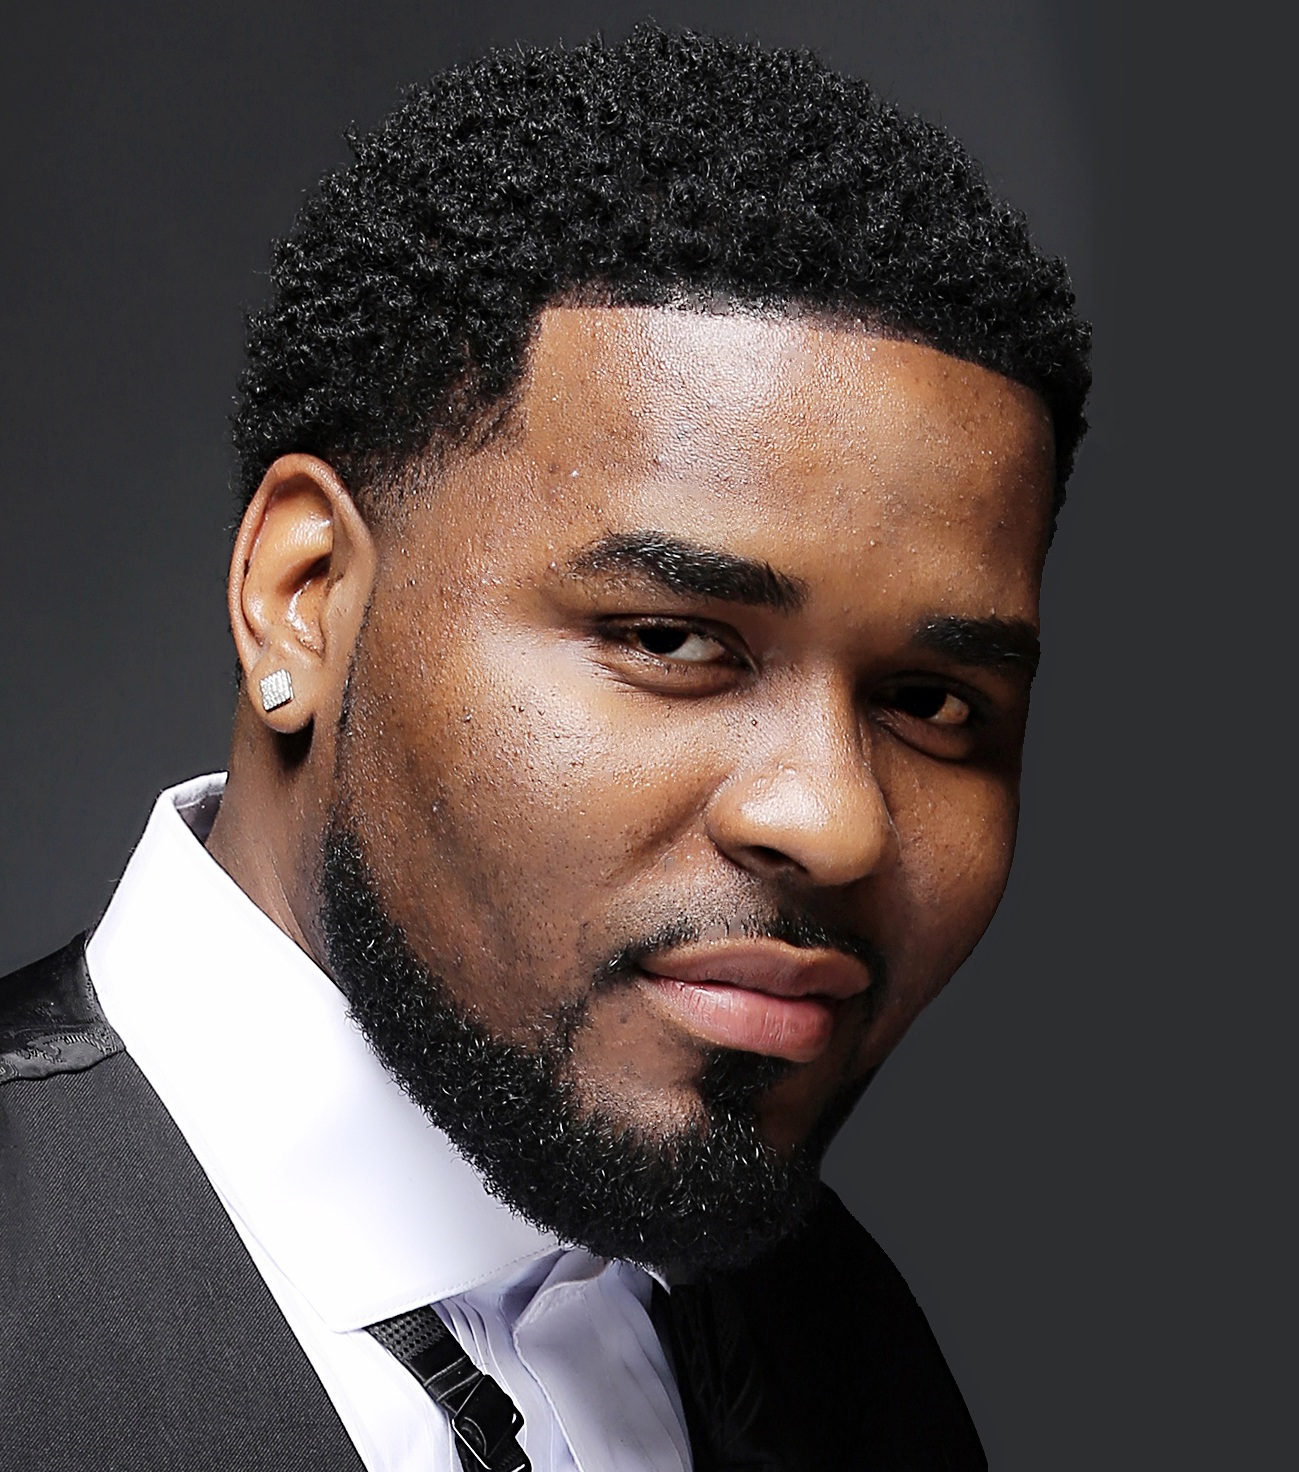 TONY DAVIS  Former national recording artist and Serial entrepreneur, Founder and Executive Director of The Made Moguls youth program.